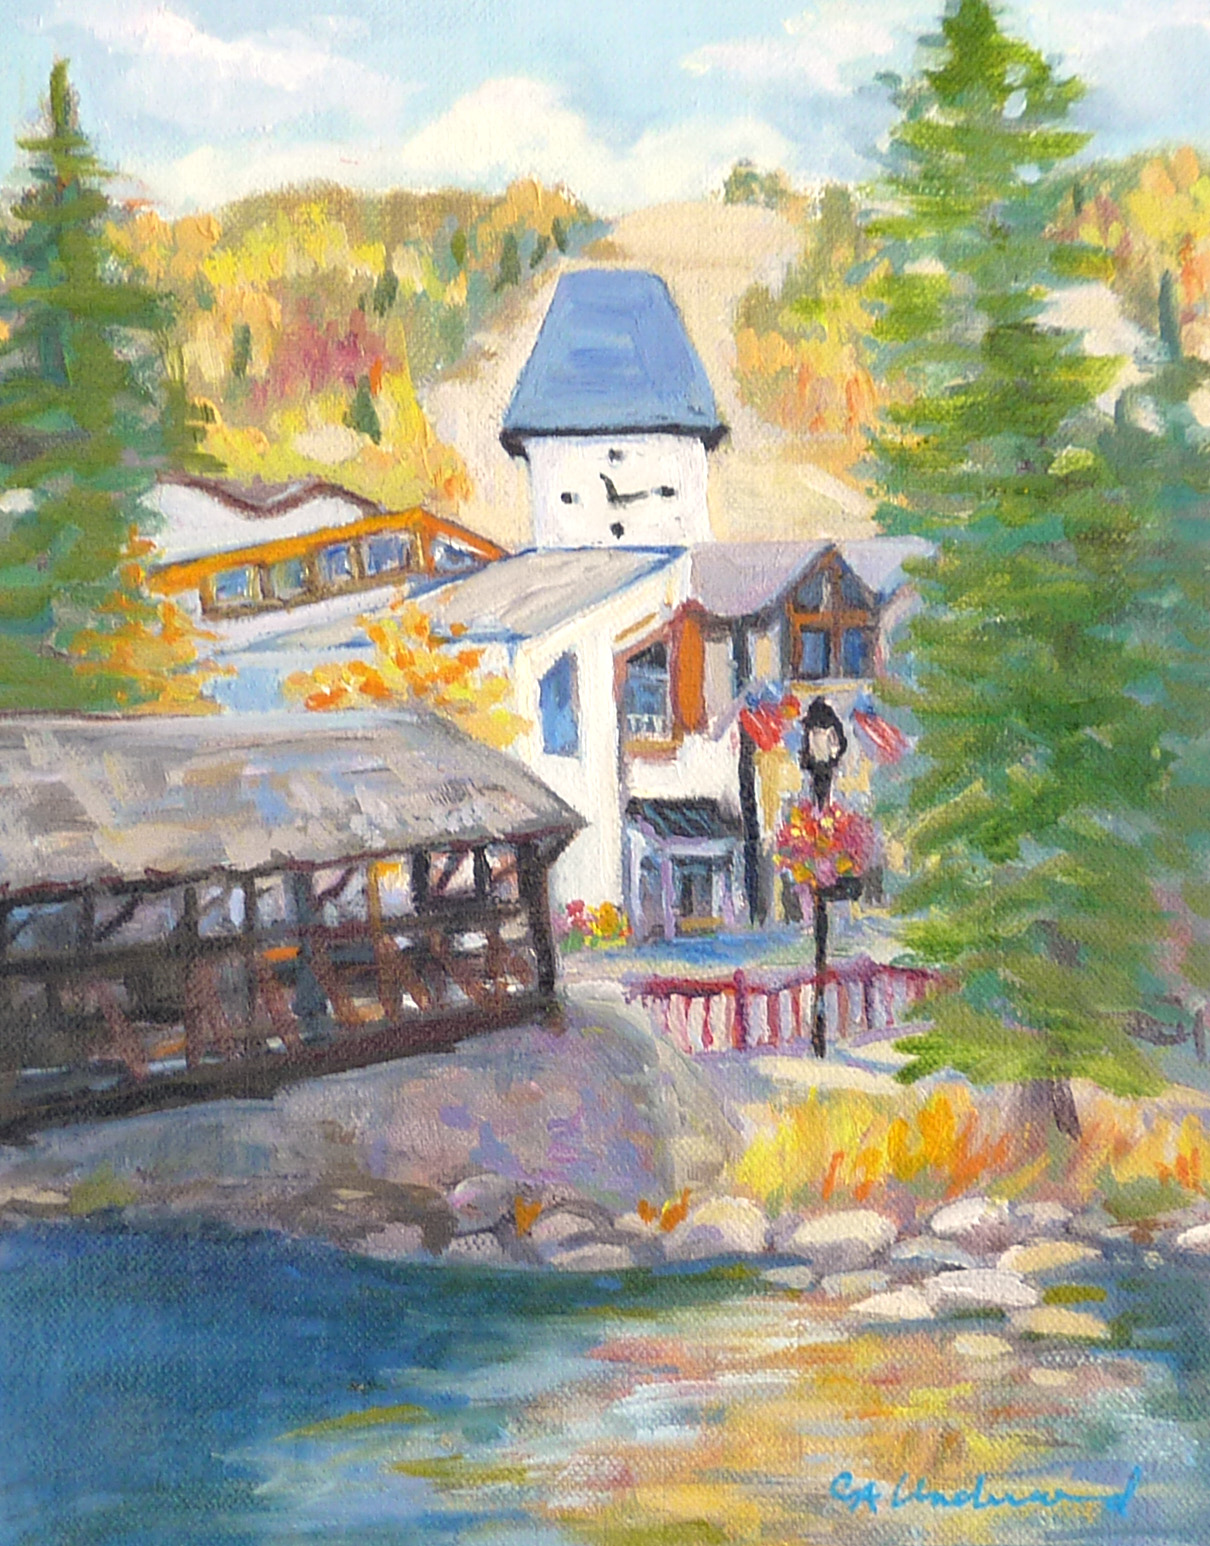 Vail Series IV (Covered Bridge in Fall)